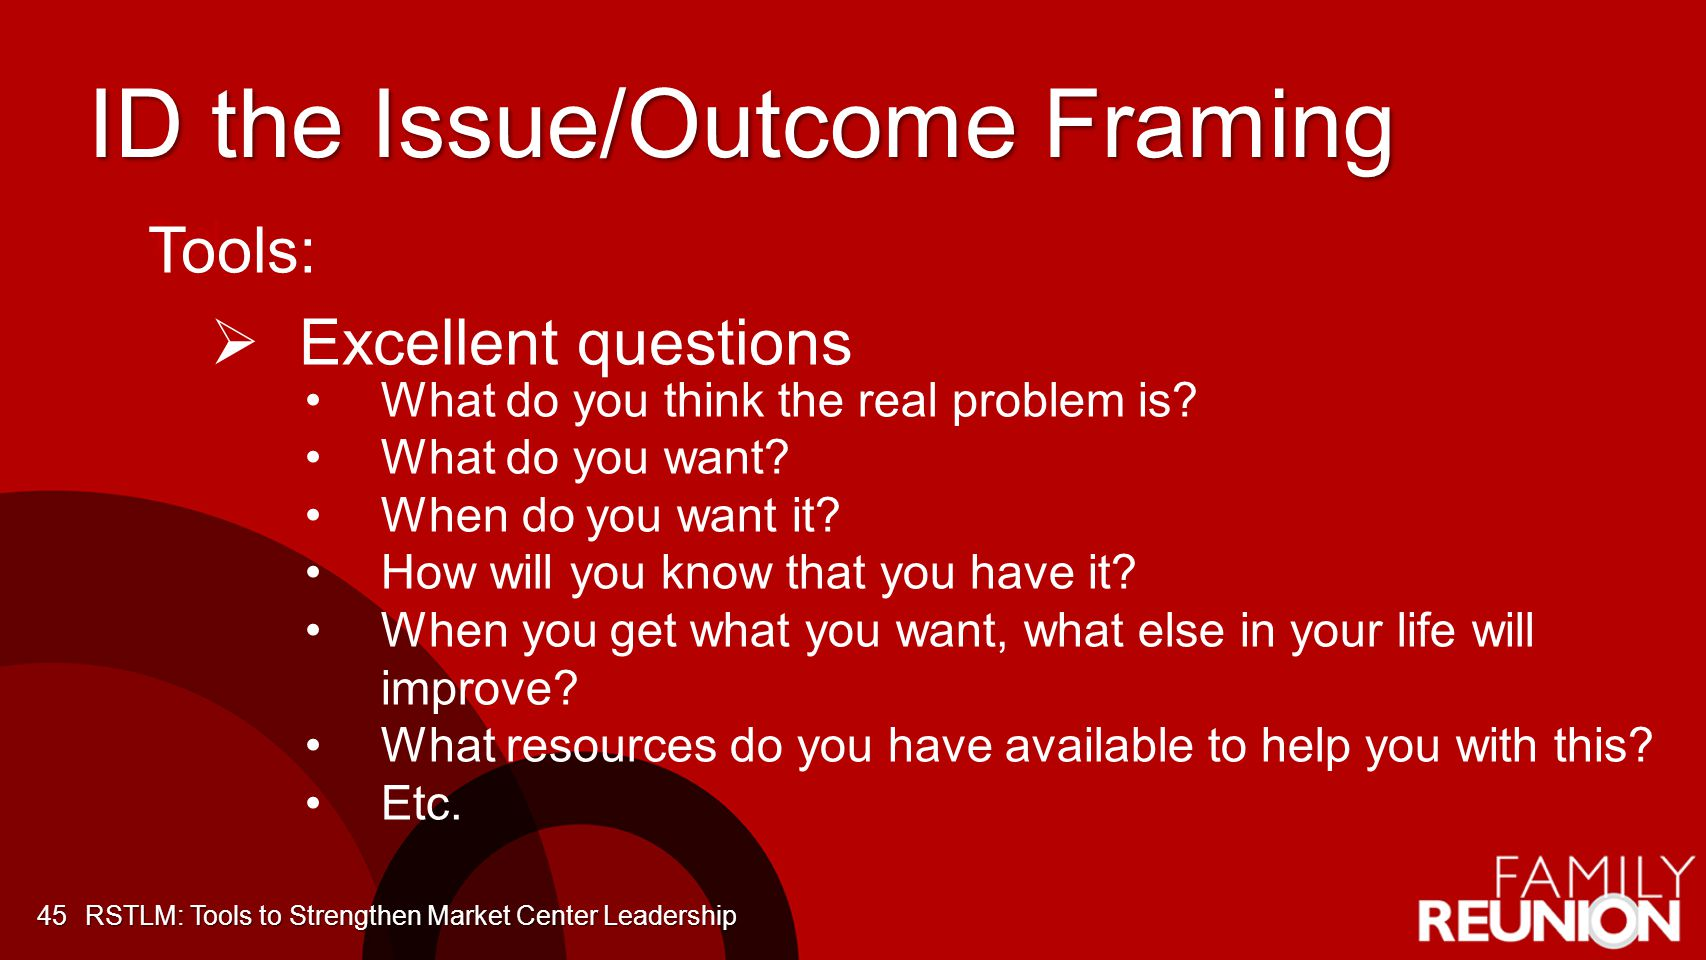 ID the Issue/Outcome Framing 45 Tool Tools: Excellent questions What do you think the real problem is.